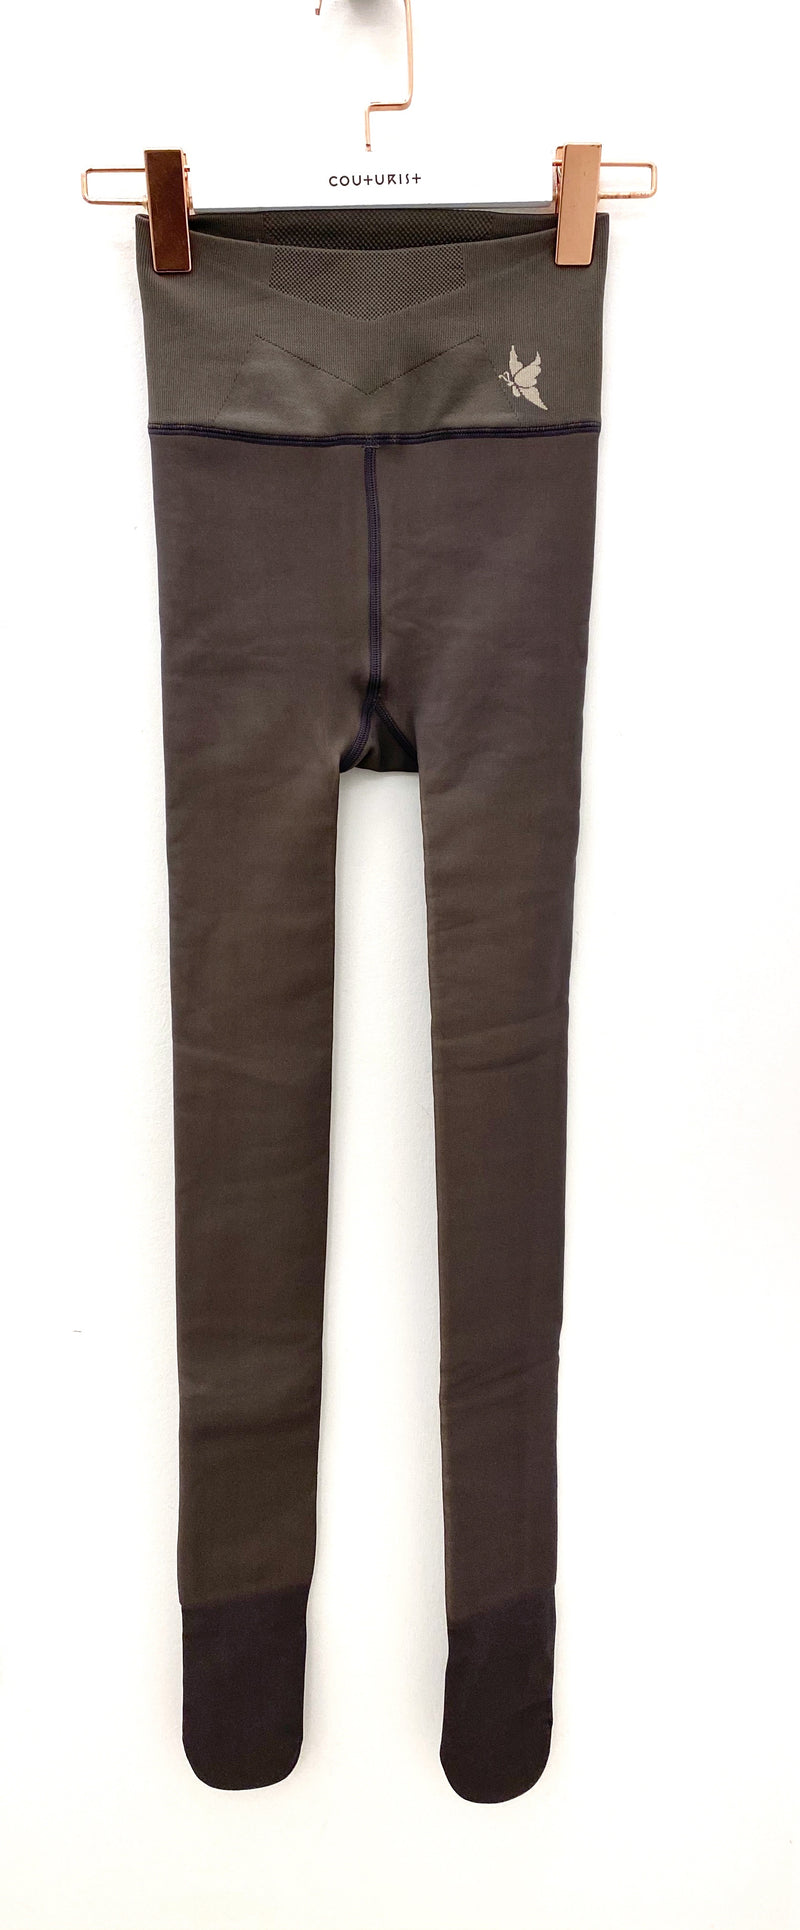 High-waisted See Through Style Tights with Fleece Lining